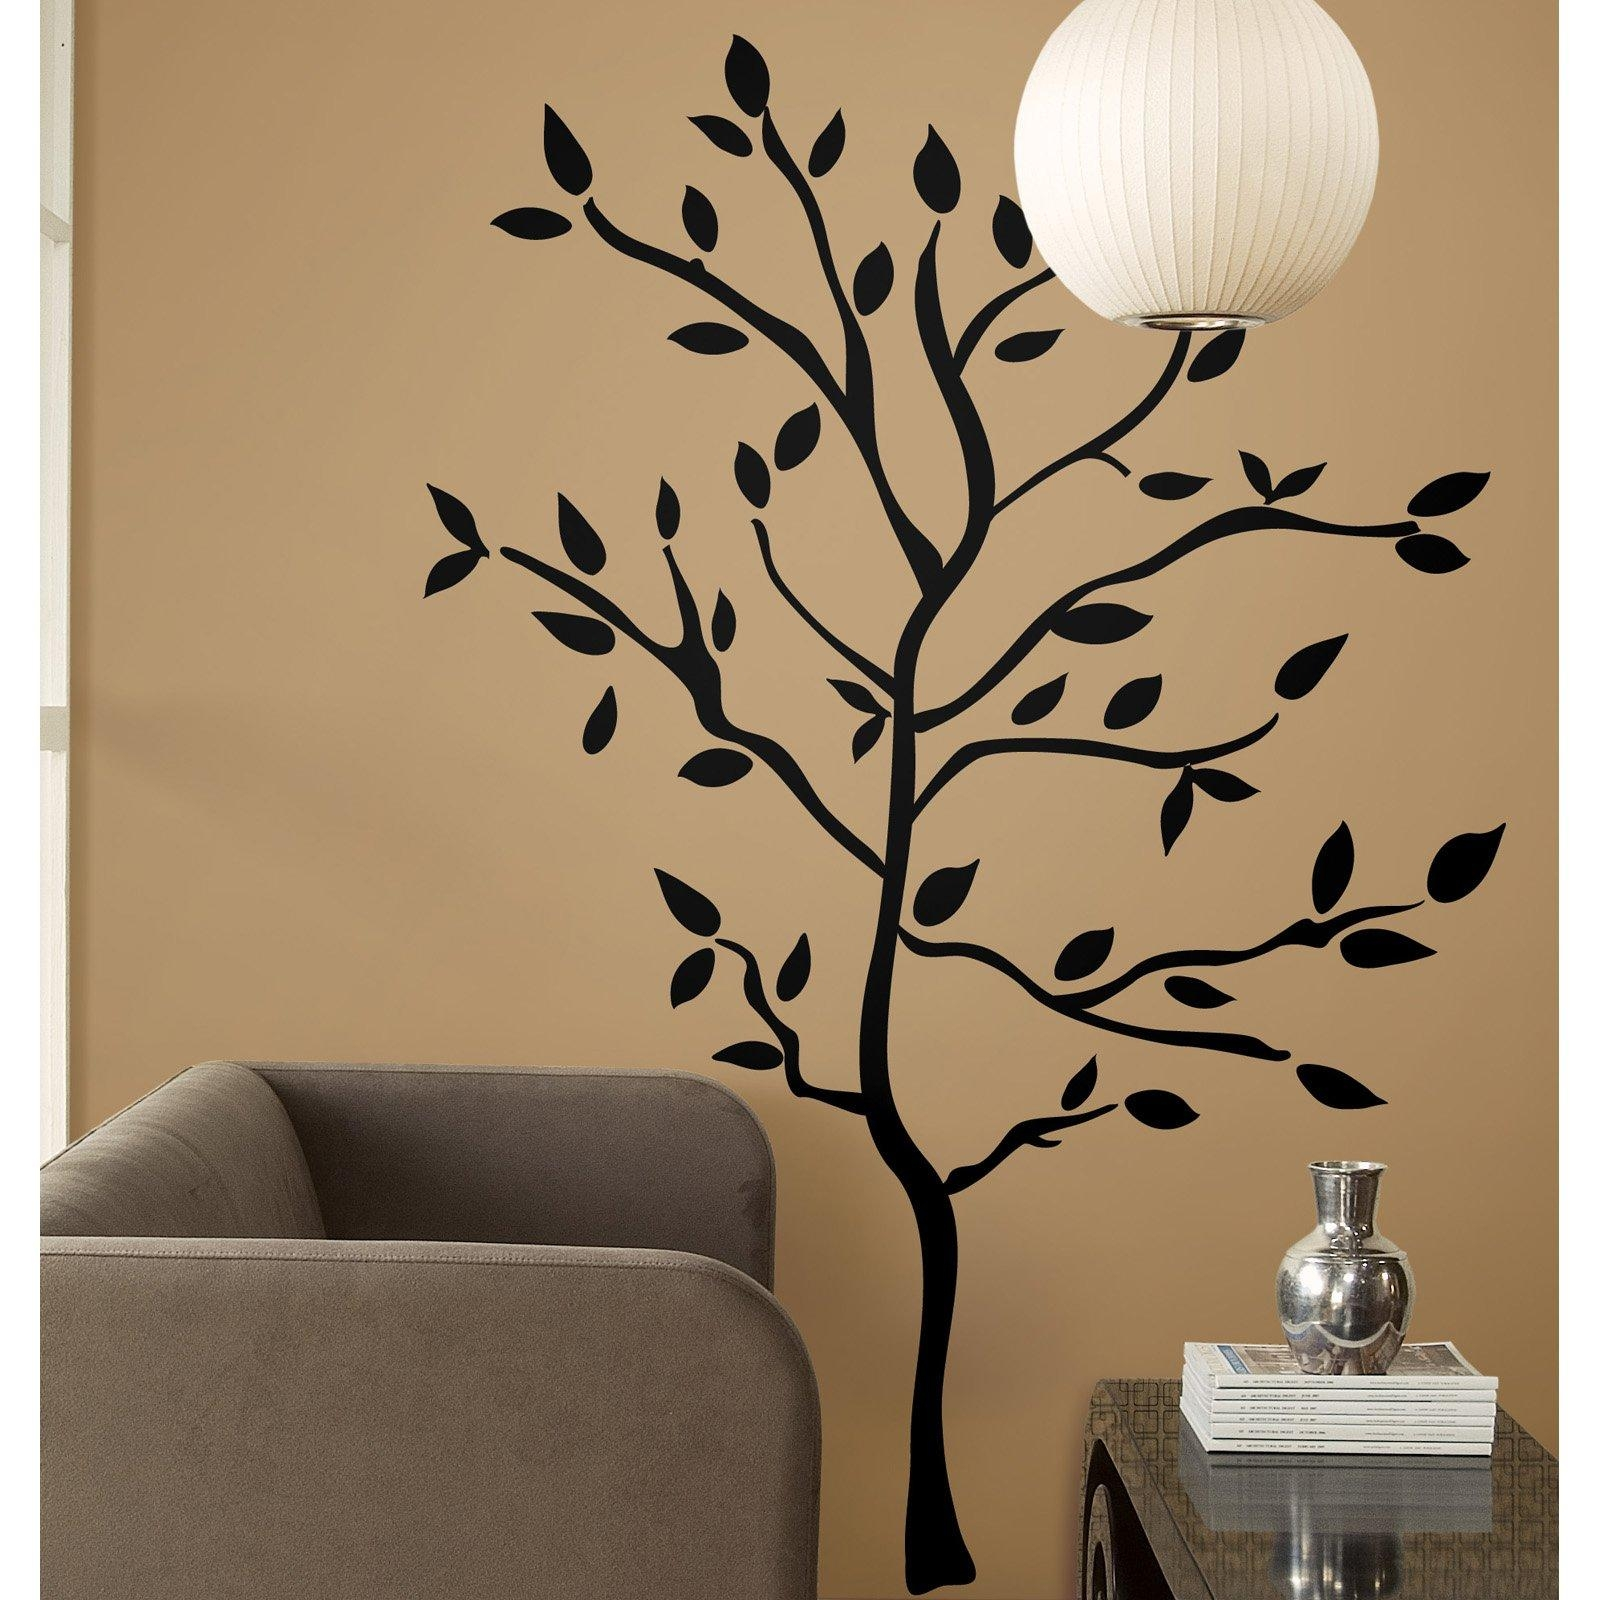 Tree Branches Peel And Stick Wall Decals – Walmart Intended For Walmart Wall Stickers (View 4 of 20)